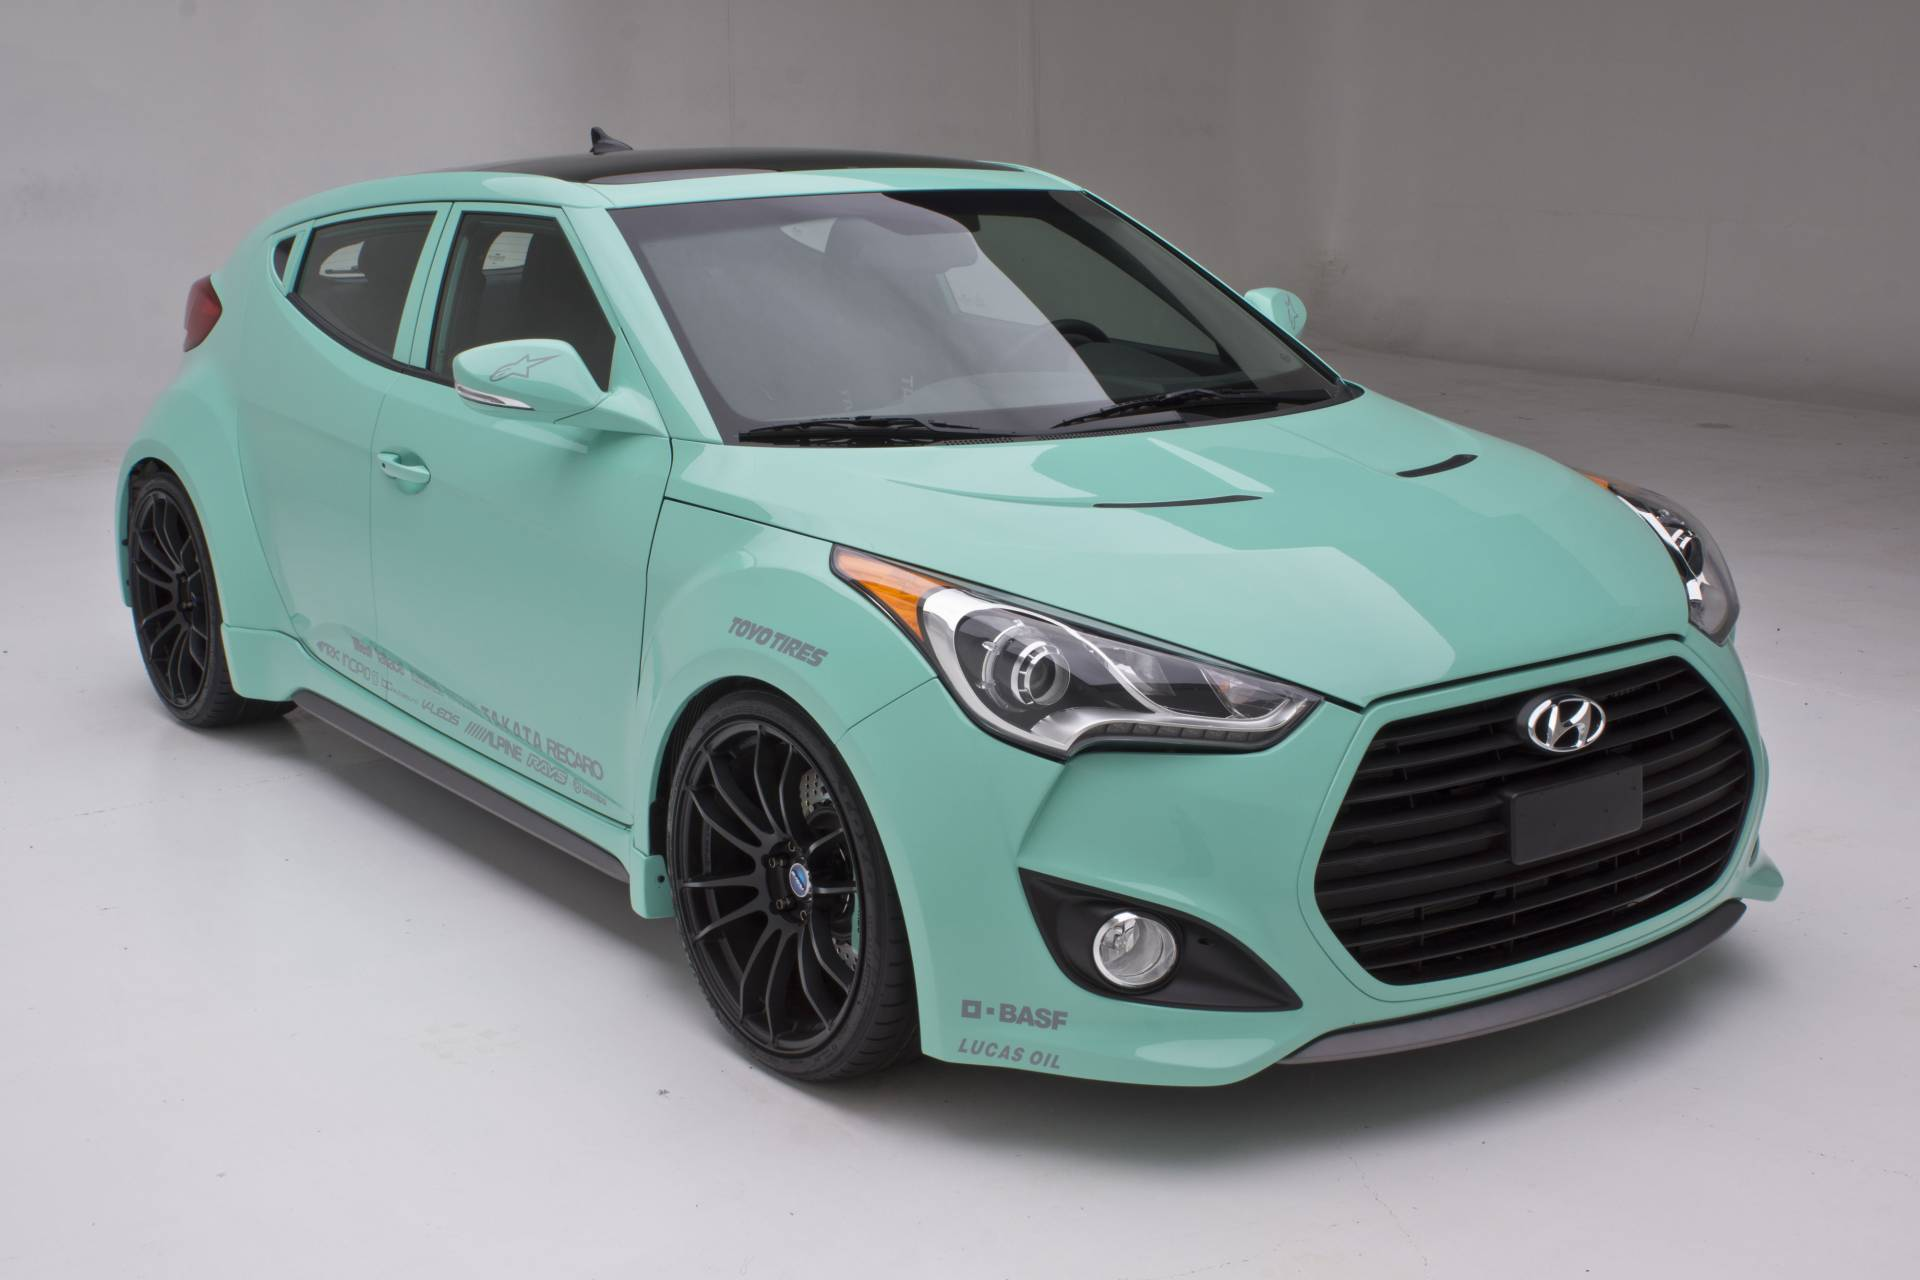 2012 hyundai jp edition veloster concept news and. Black Bedroom Furniture Sets. Home Design Ideas